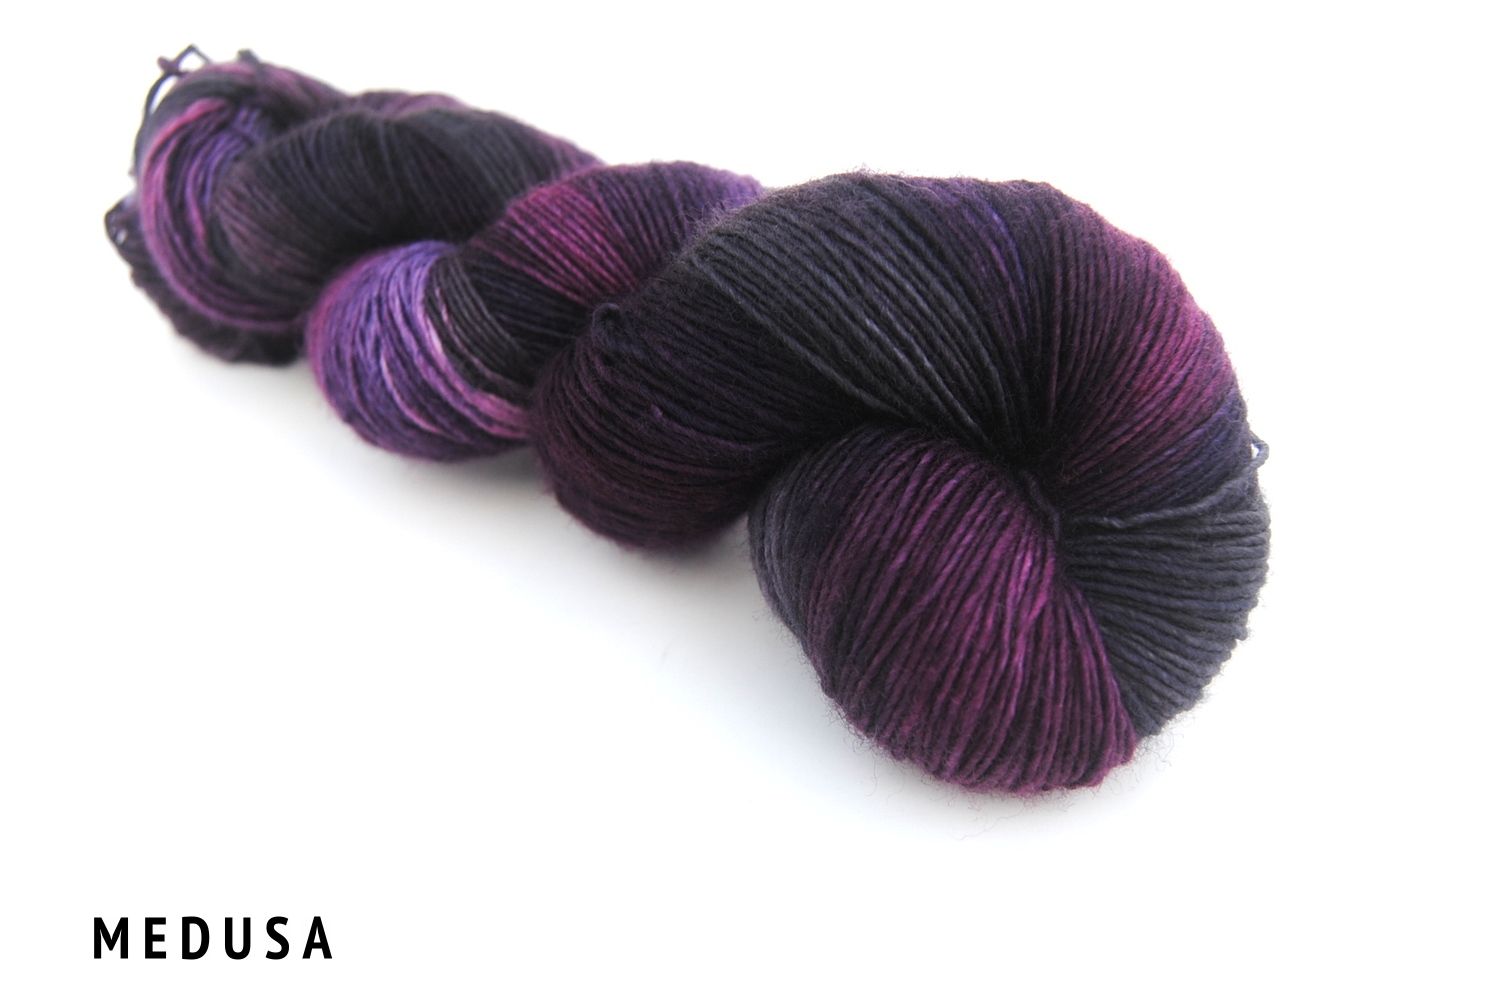 MEDUSA on merino fingering singles.jpg